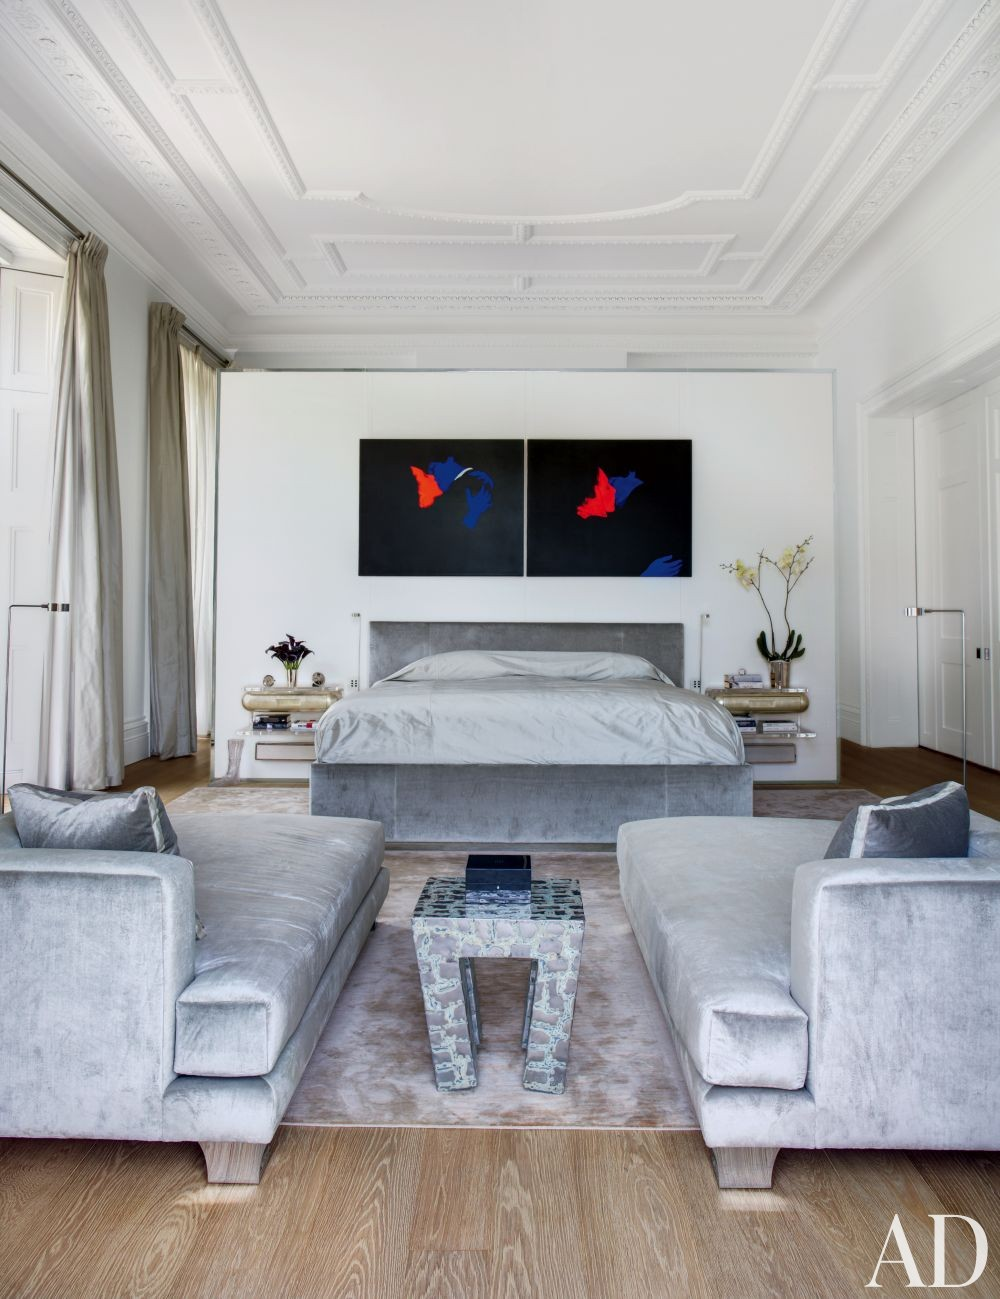 Contemporary Bedroom by Francis Sultana Ltd. and Thomas Croft Architects in London, England